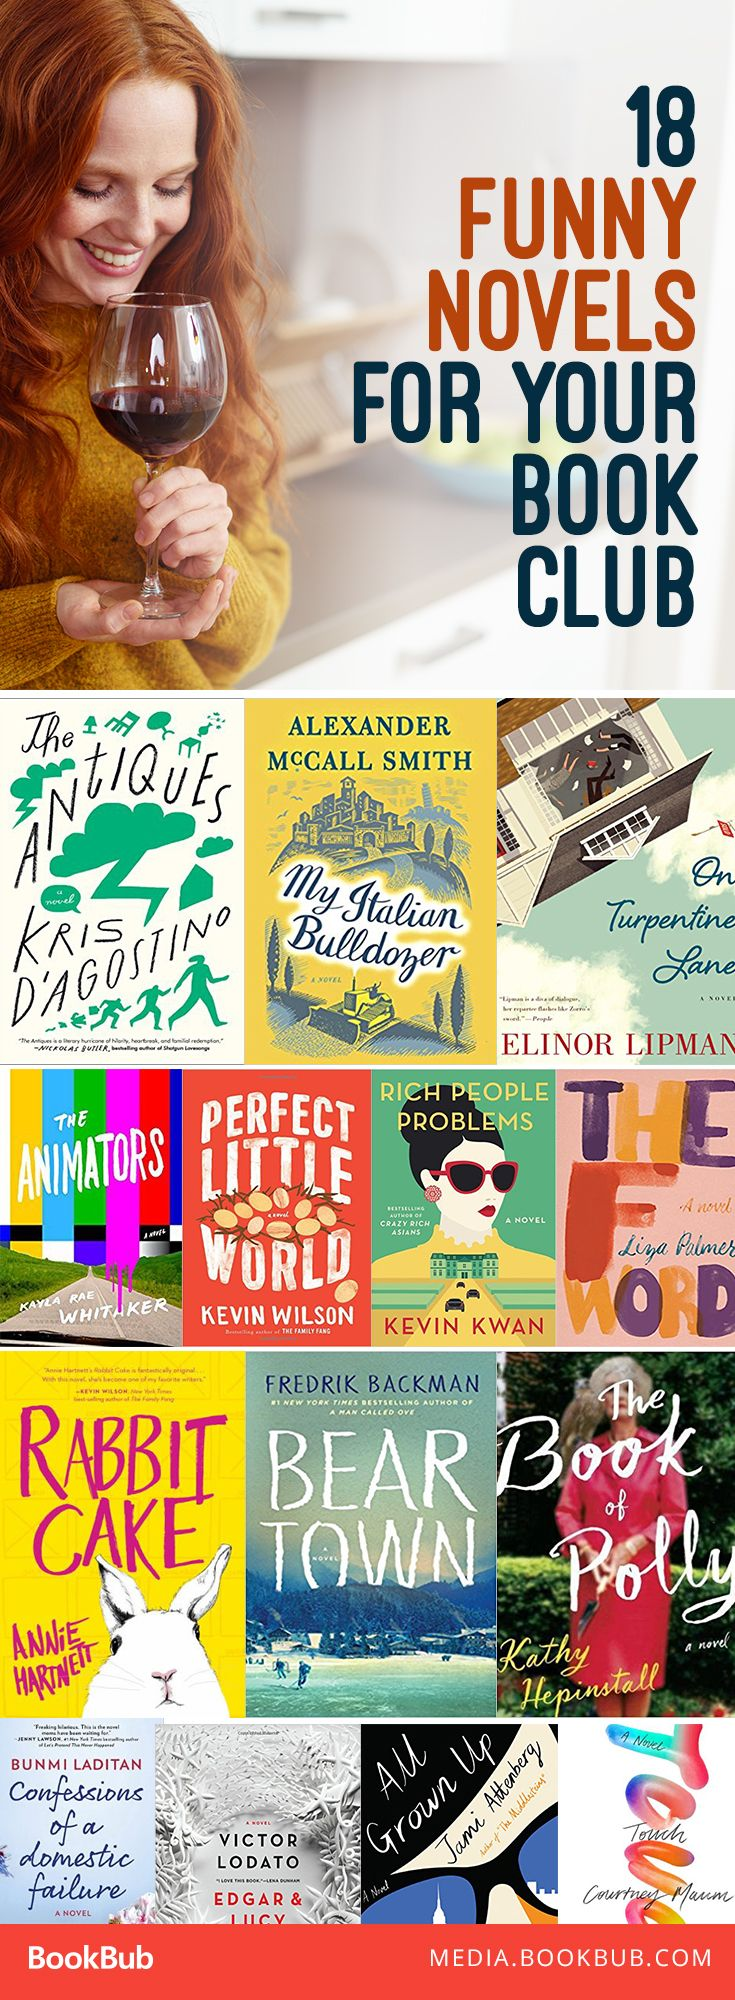 Looking to mix it up with a light-hearted, funny novel at your next book club? This list from BookBub recommends 18 titles that fit the bill.